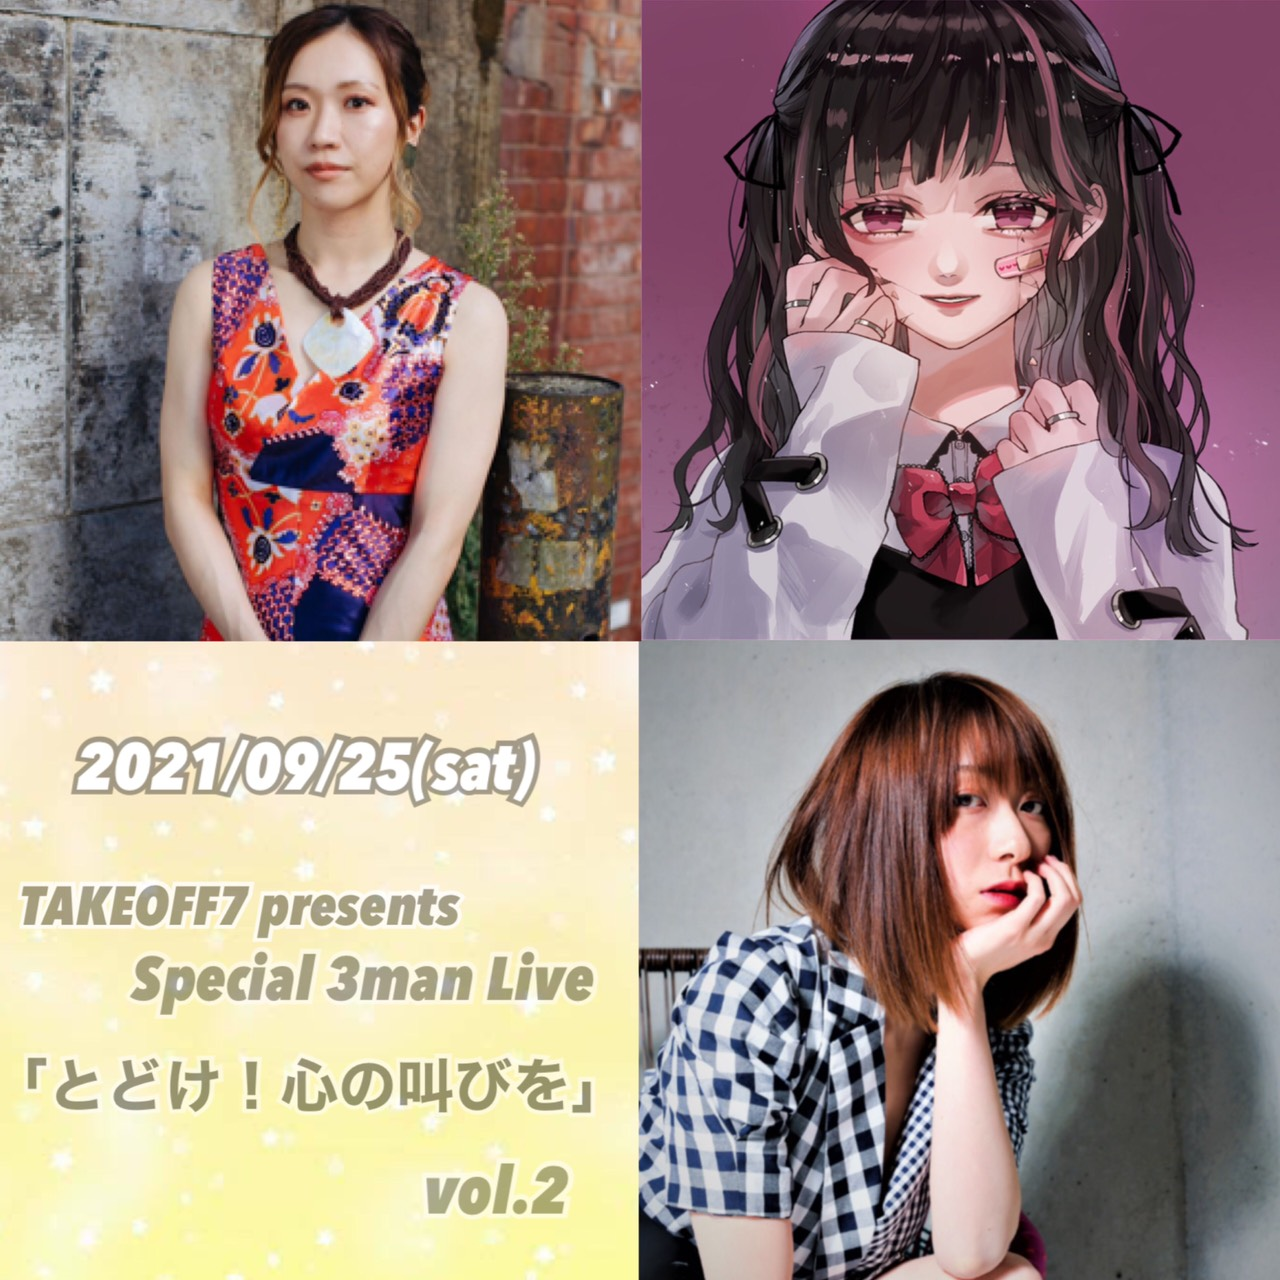 TAKEOFF7 presents Special 3man Live 「とどけ!心の叫びを!」vol.2